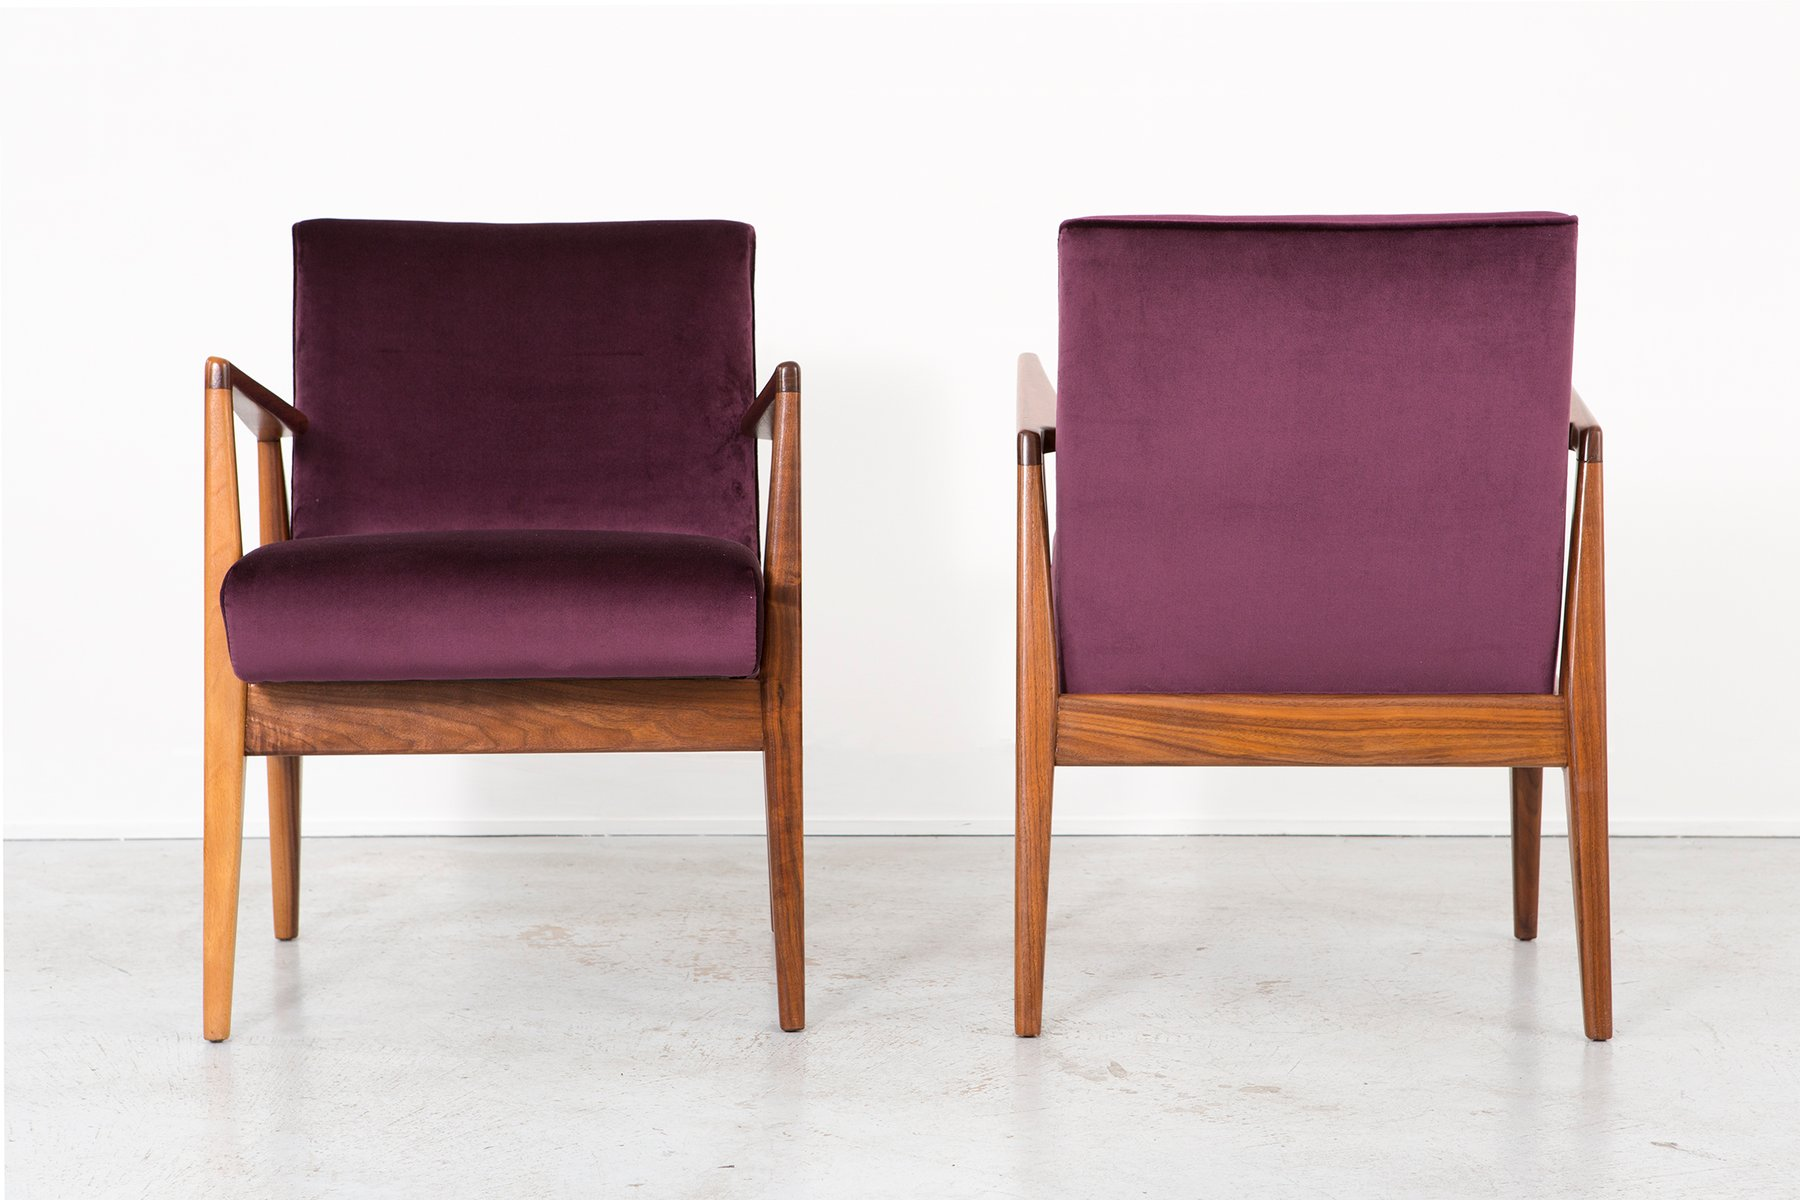 Vintage Lounge Chairs by Jens Risom Set of 2 for sale at Pamono